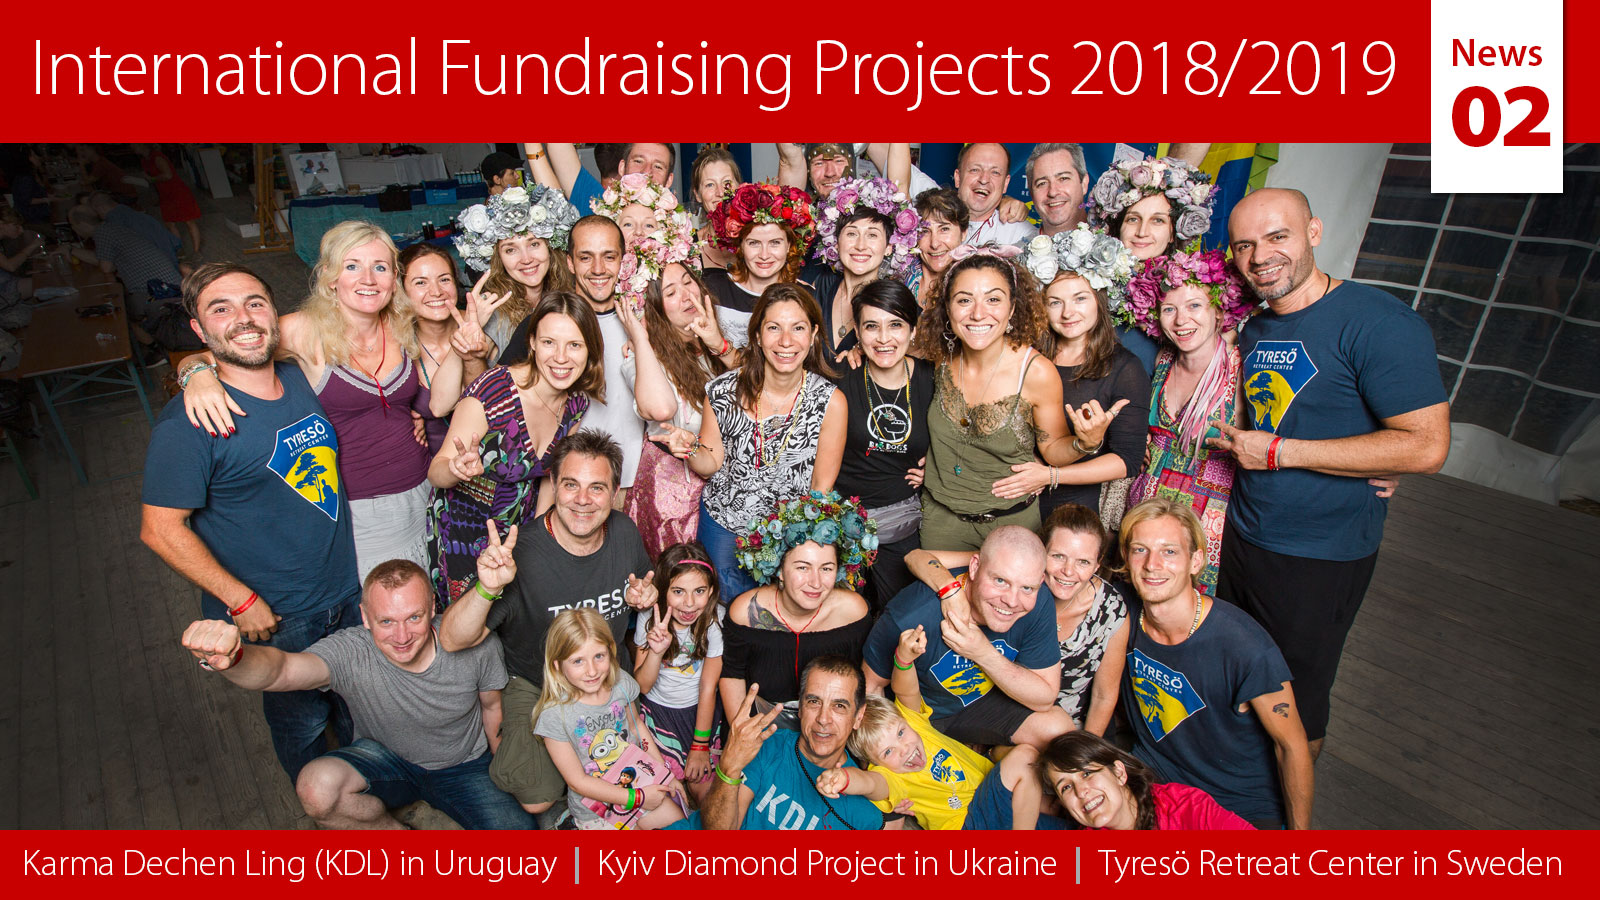 International Fundraising Projects 2019/2020 – News 02